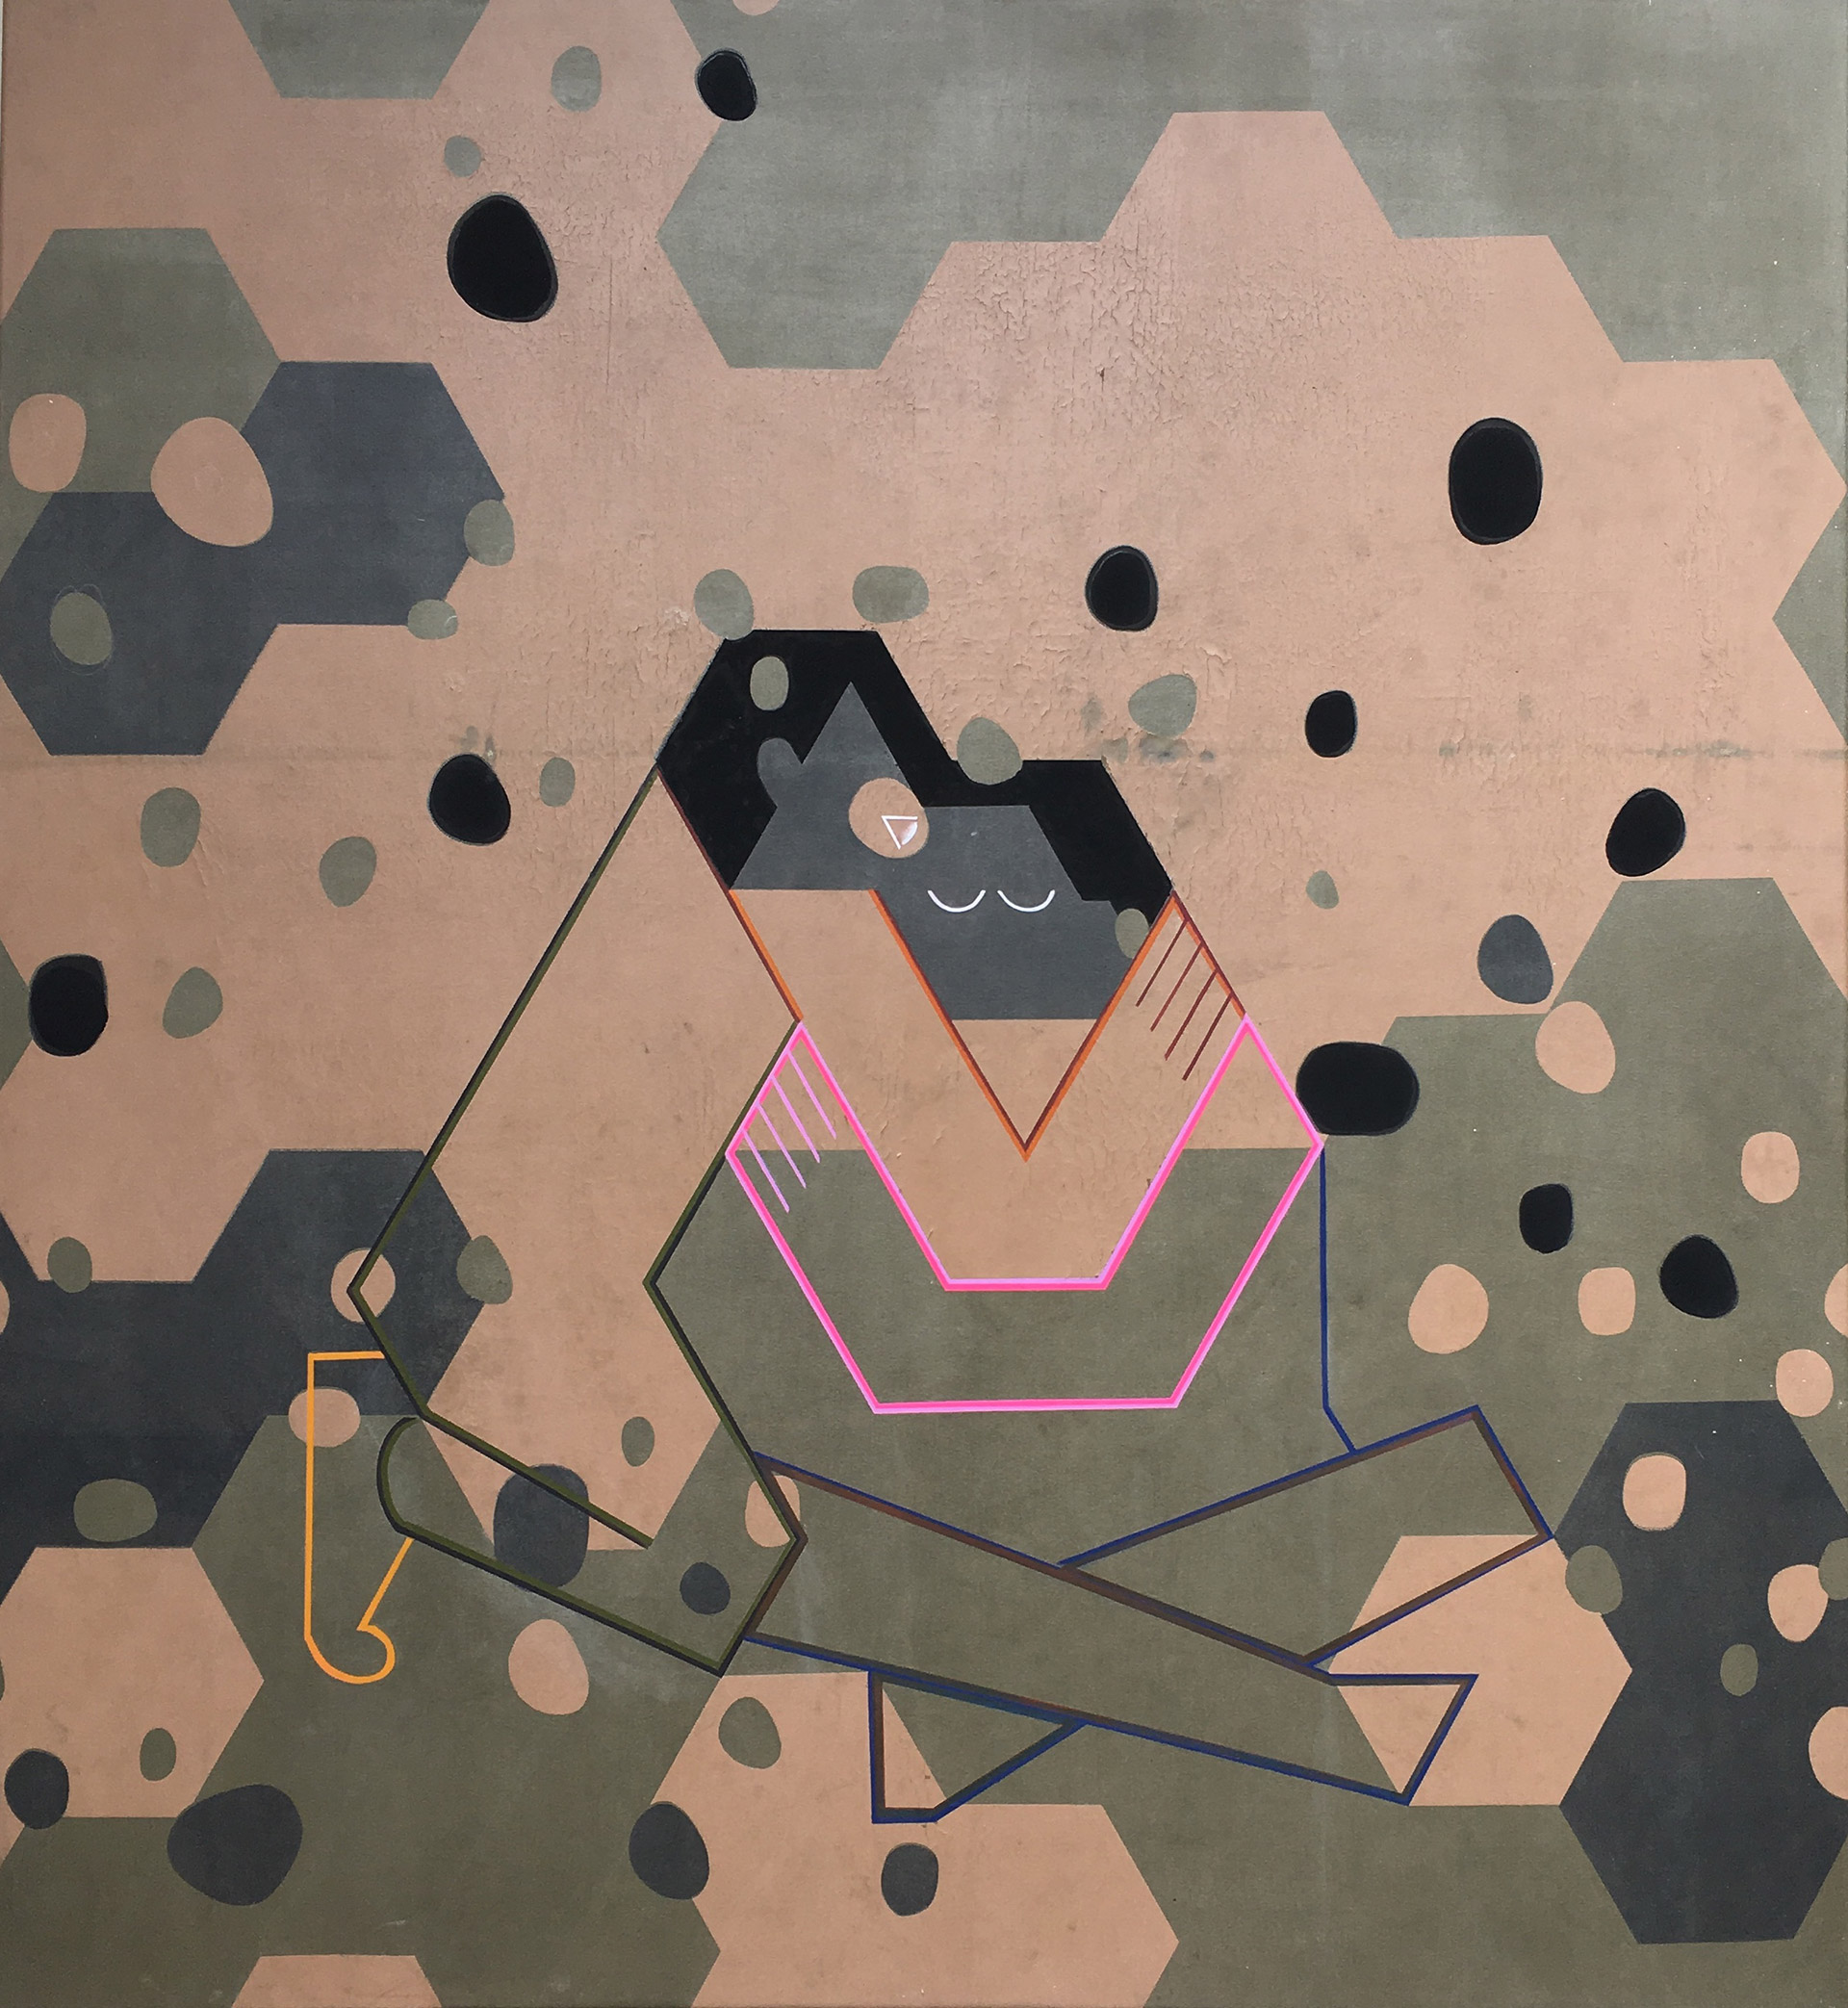 2. How to look at a hexagon is a painting by Madeleine Kelly on army tarpaulin two people embrace shown C3 Contemporary art space Milani GalleryMadeleine Kelly How to look at a hexagon 2018 acrylic and oil on tarpaulin 115 x 125 cm